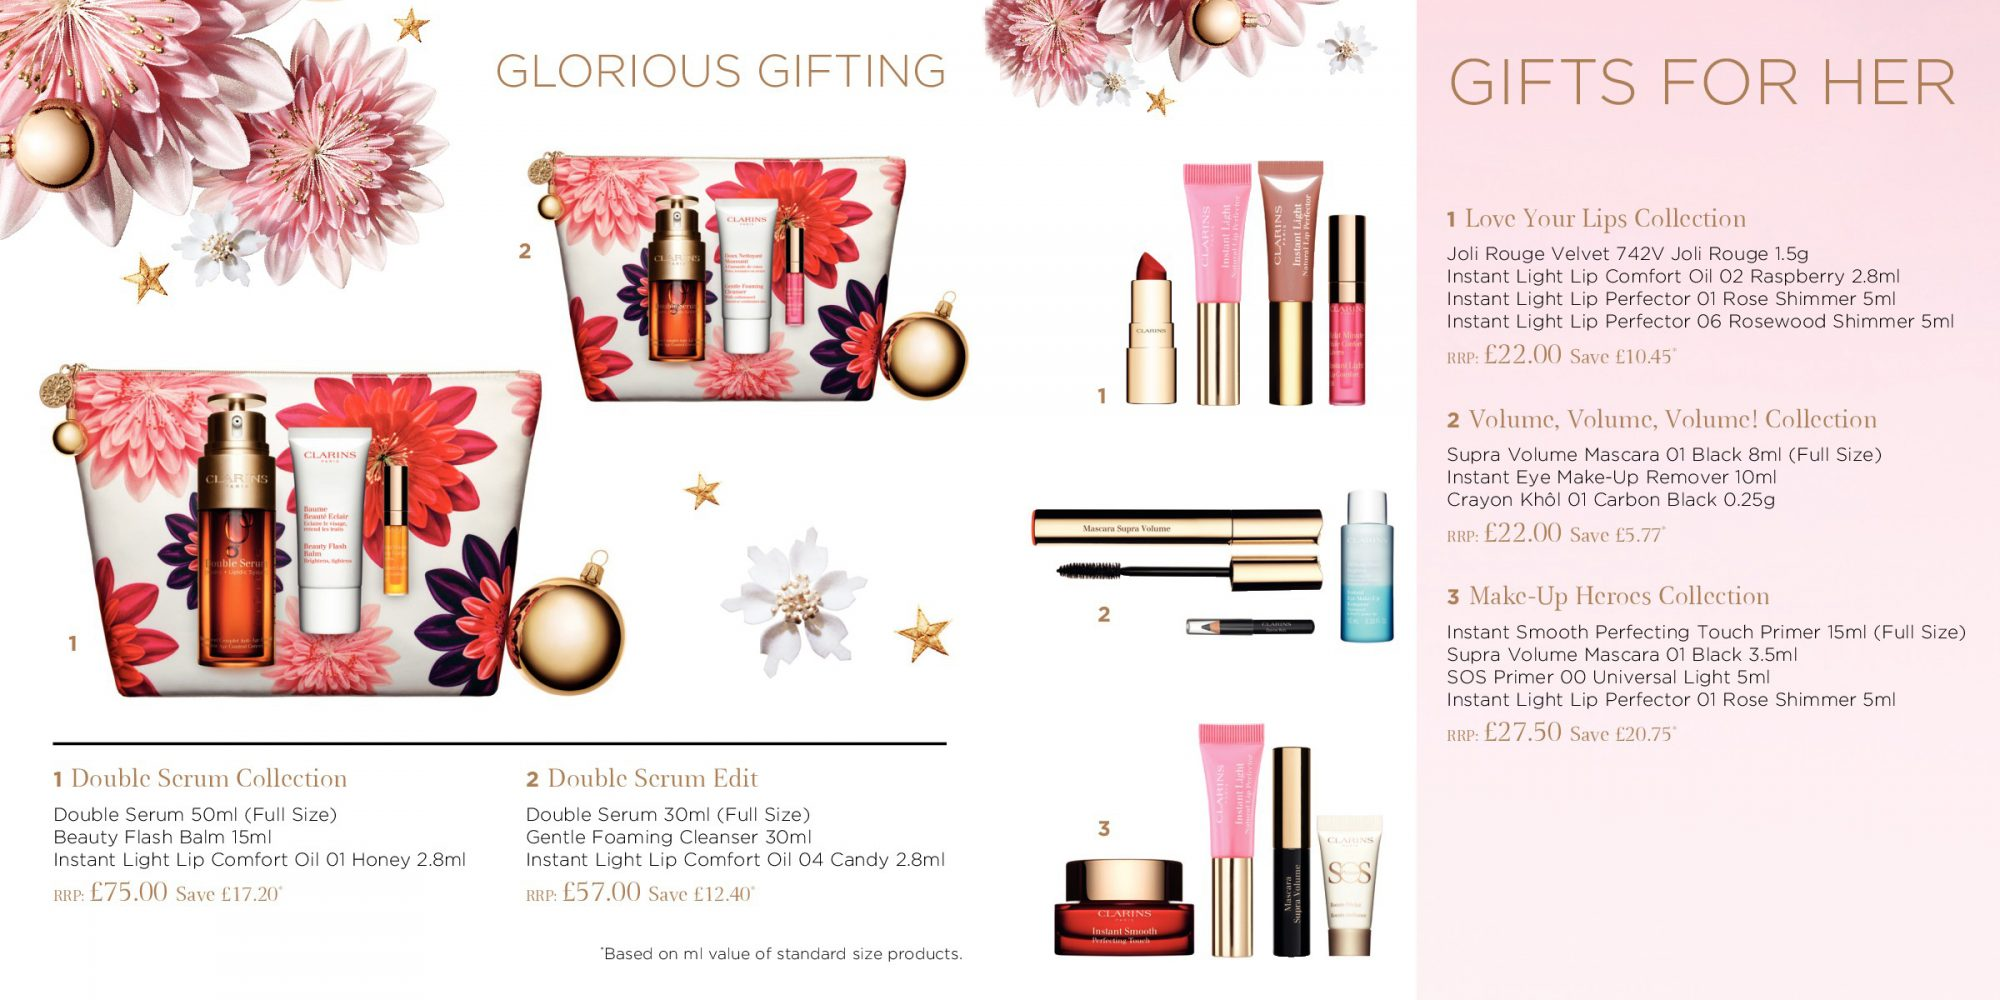 Clarins Brochure Christmas Gifts Spread 3 - Glorious Gifting and Gifts for Her 2 2018